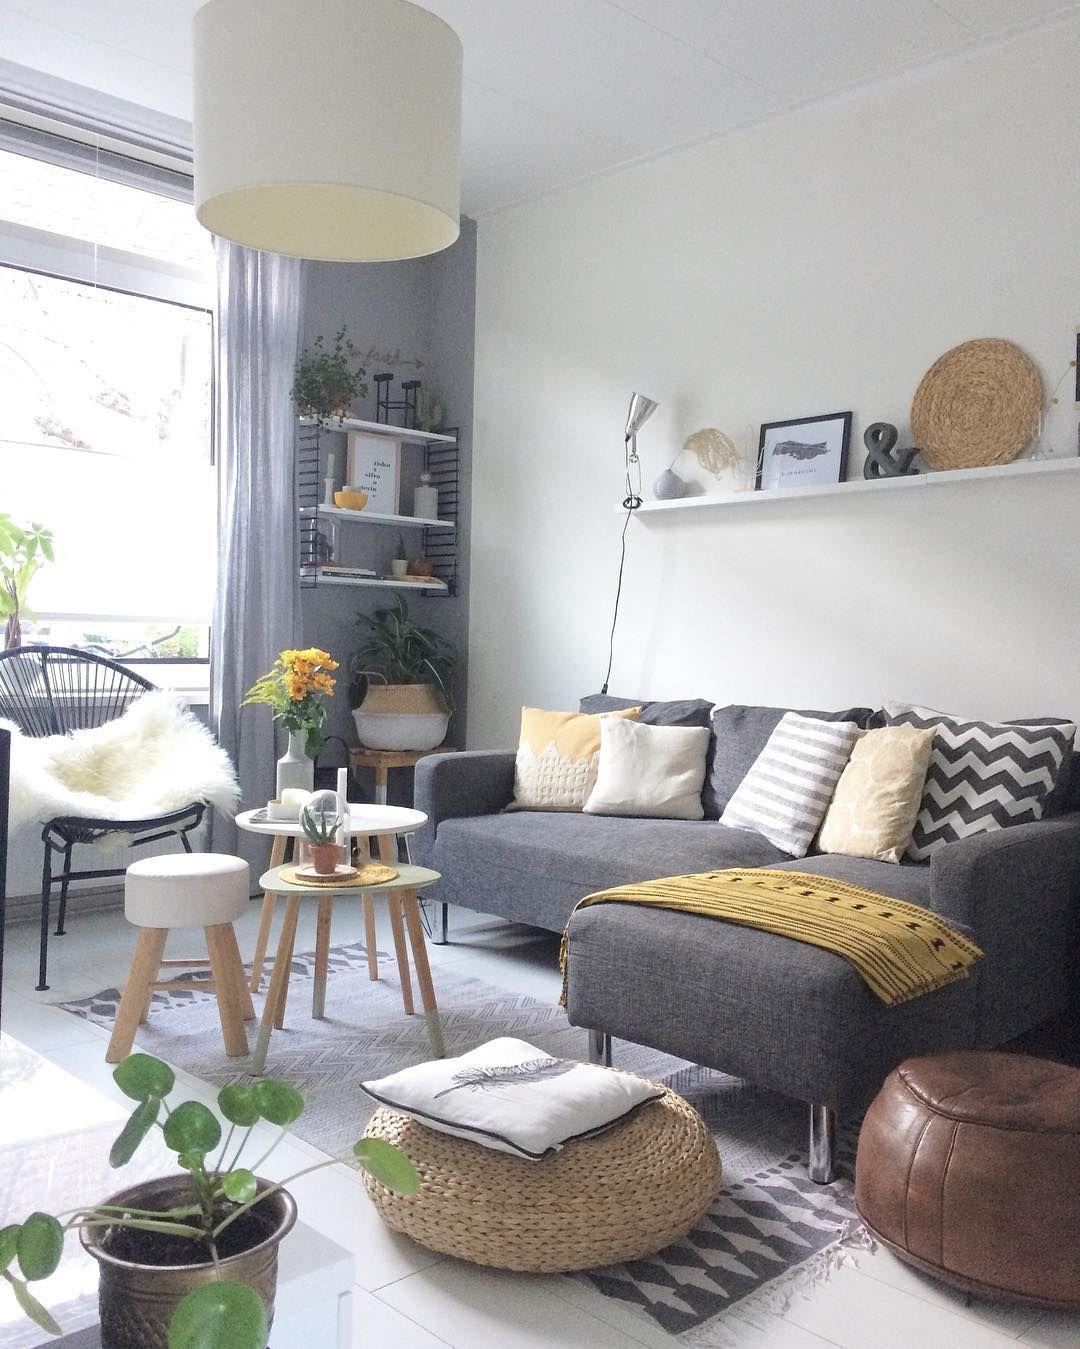 100 Instagram Interieur inspiratie top 5 | Interiors | General ...